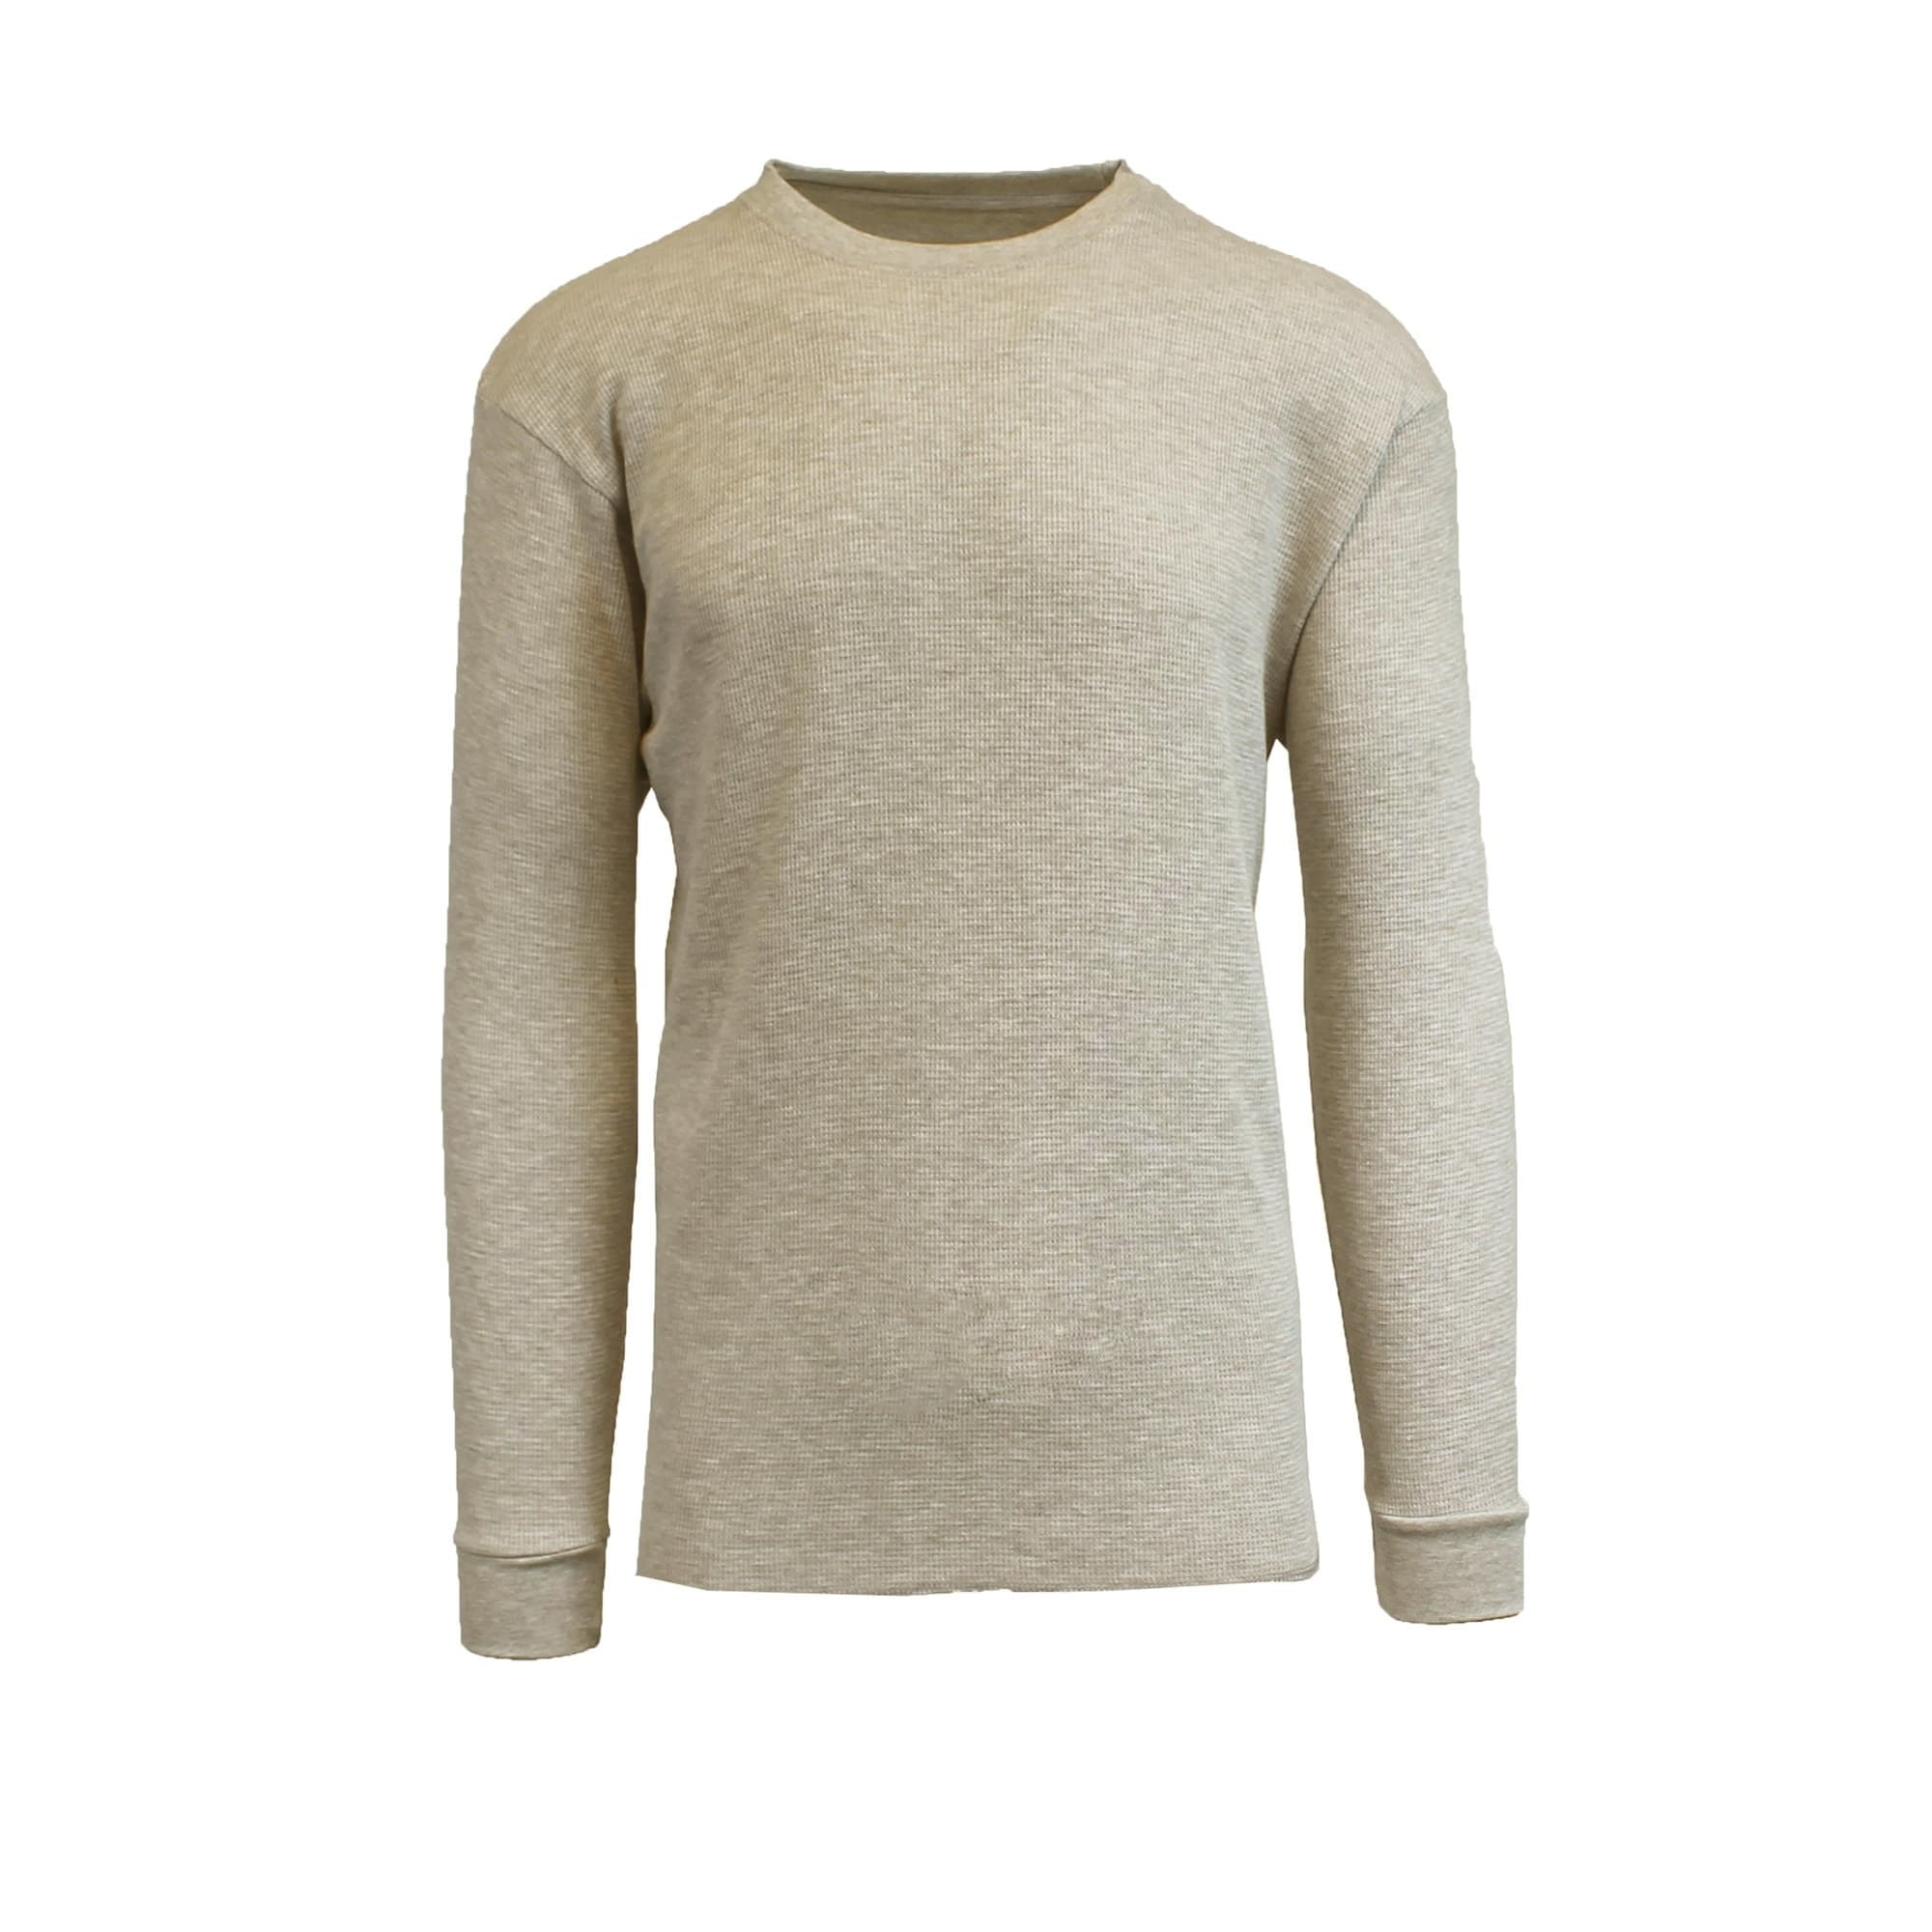 df601c224338 Shop Galaxy By Harvic Men s Long Sleeve Crew Neck Thermal Waffle Shirts -  On Sale - Free Shipping On Orders Over  45 - Overstock - 19400642